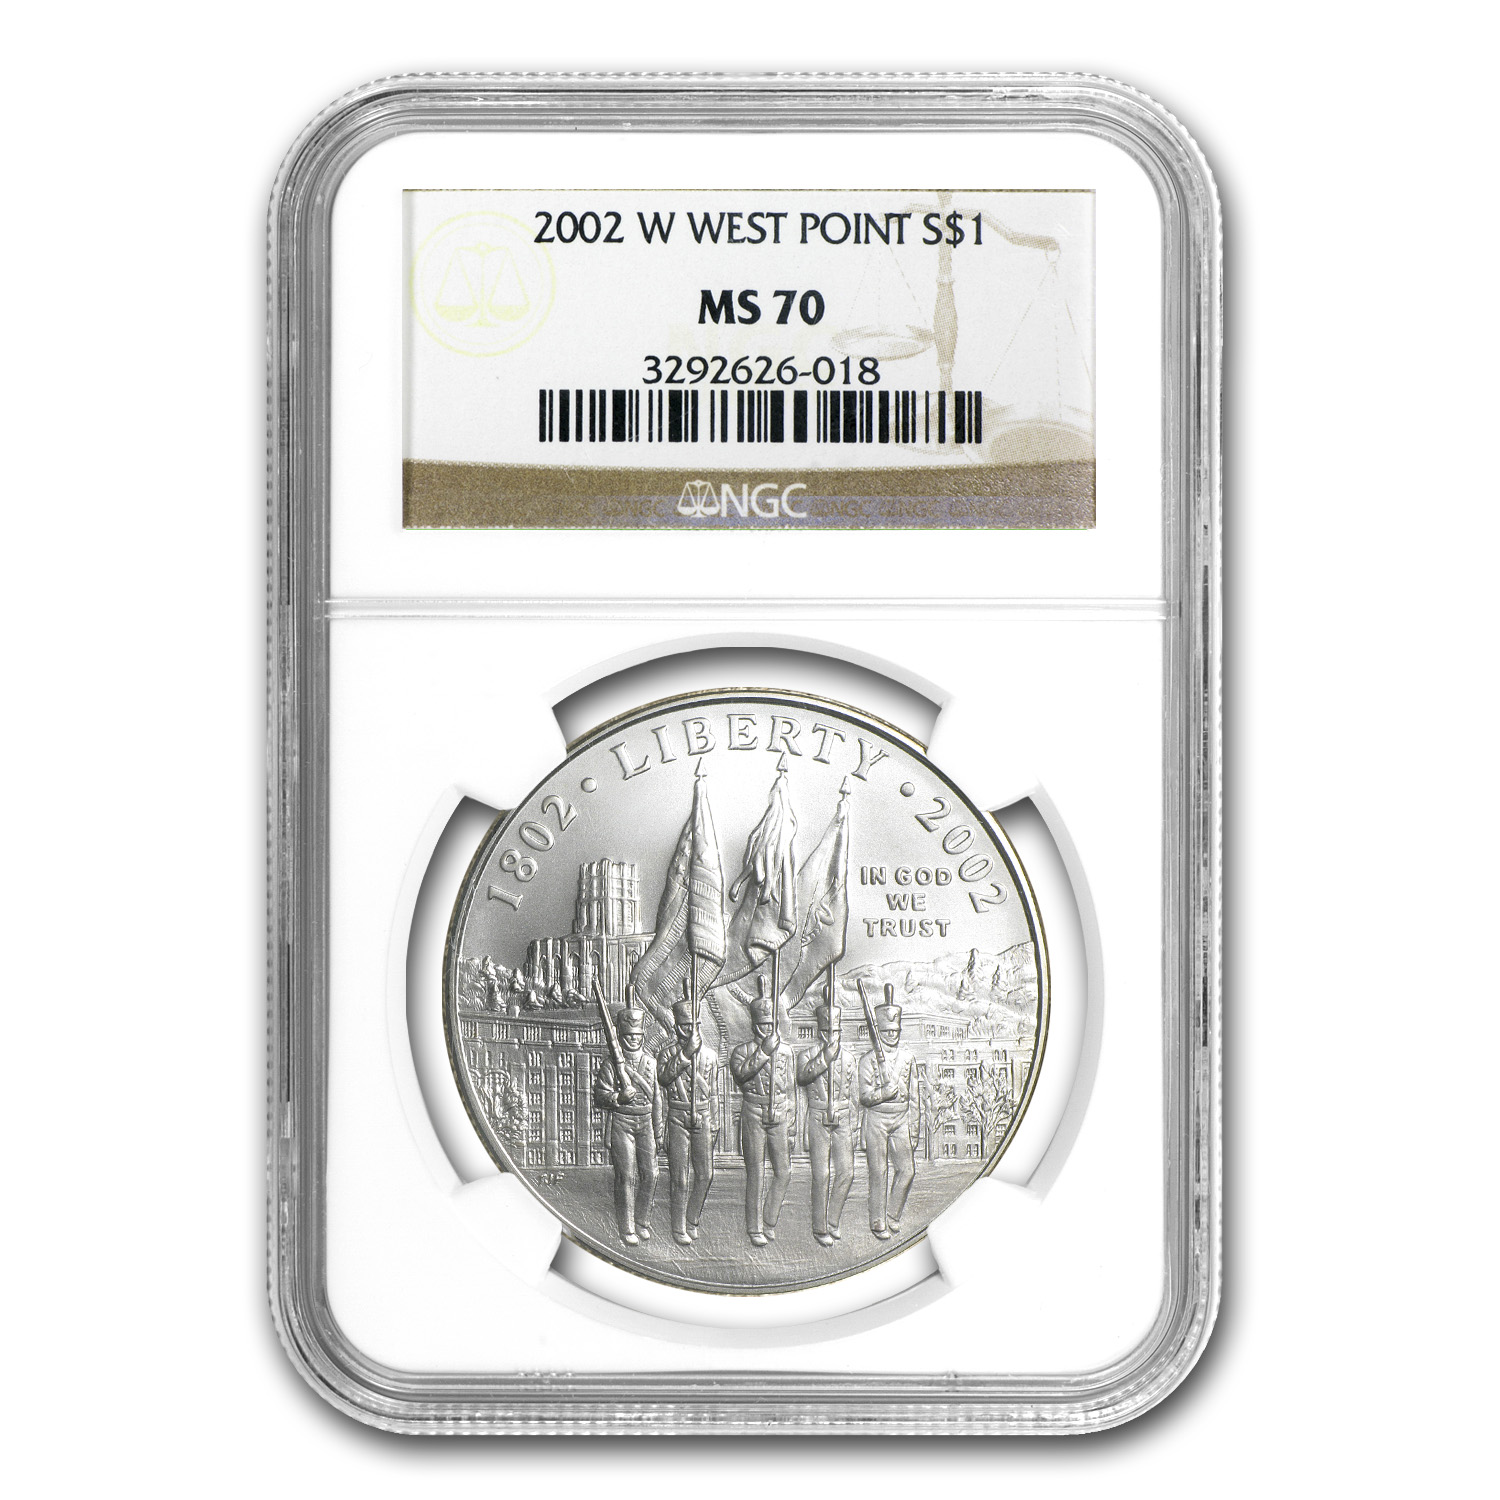 2002-W West Point Bicentennial $1 Silver Commem MS-70 NGC